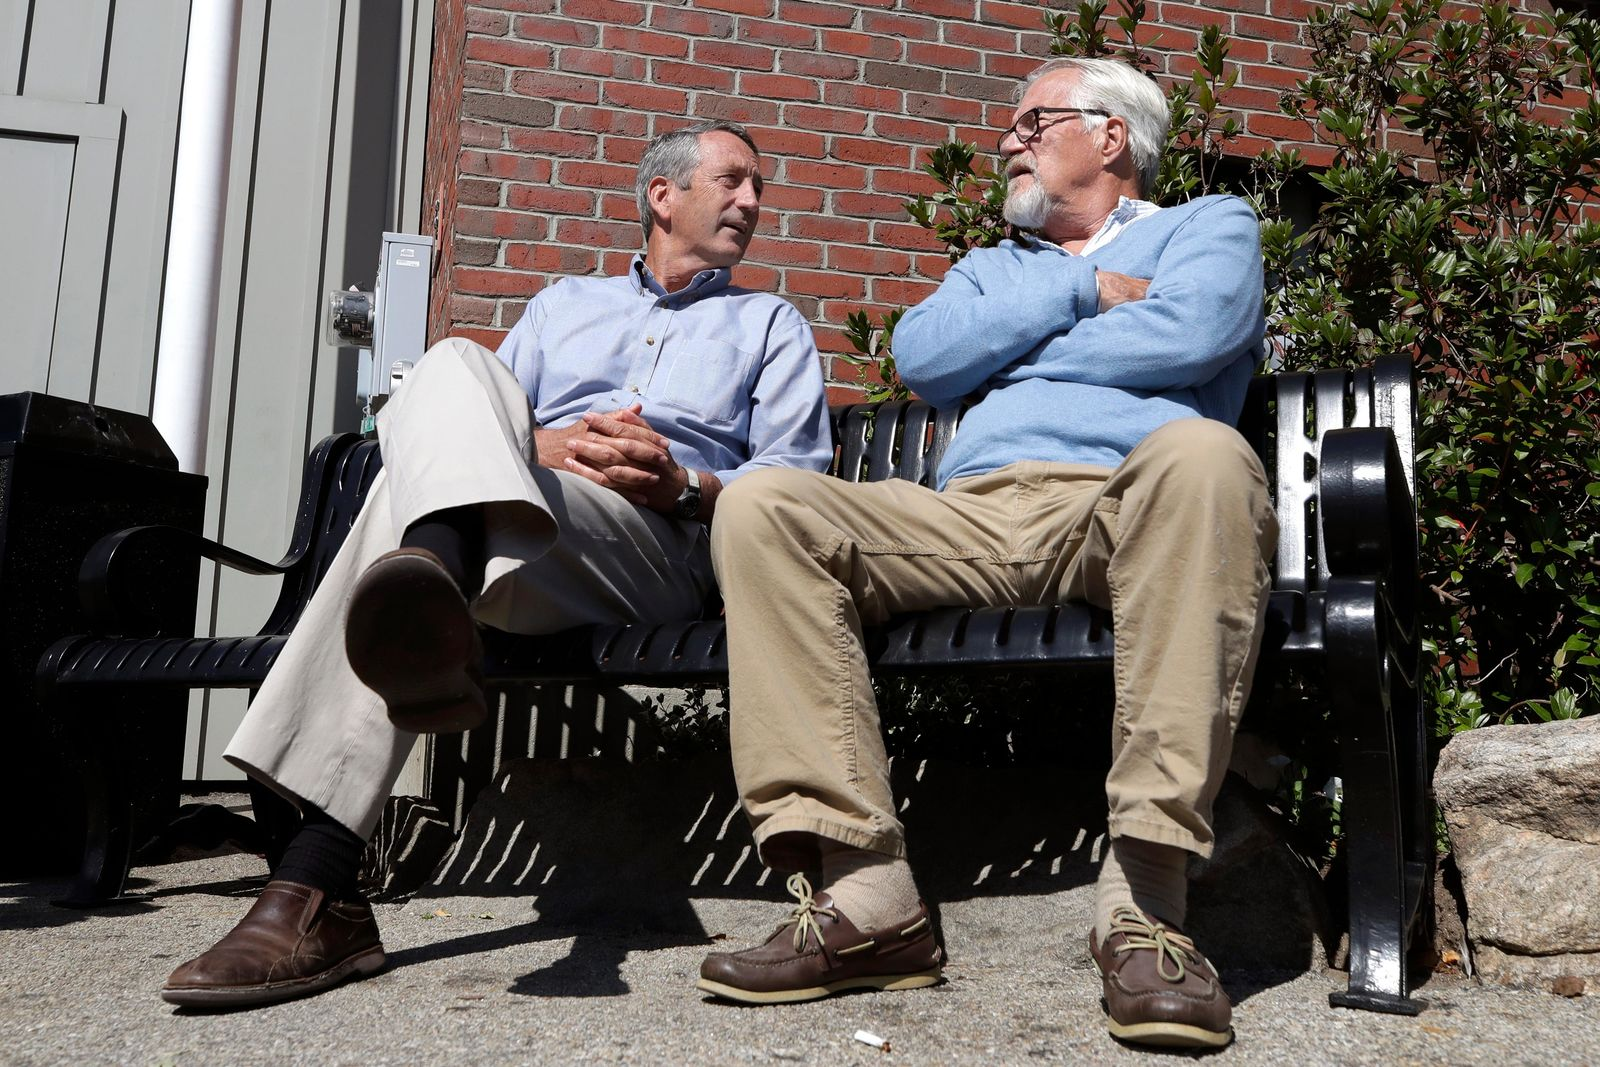 Republican presidential candidate former South Carolina Gov. Mark Sanford, left, chats with{ }Ken Demick, of Manchester, N.H., as he campaigns, Thursday, Sept. 19, 2019, in Manchester. (AP Photo/Elise Amendola)